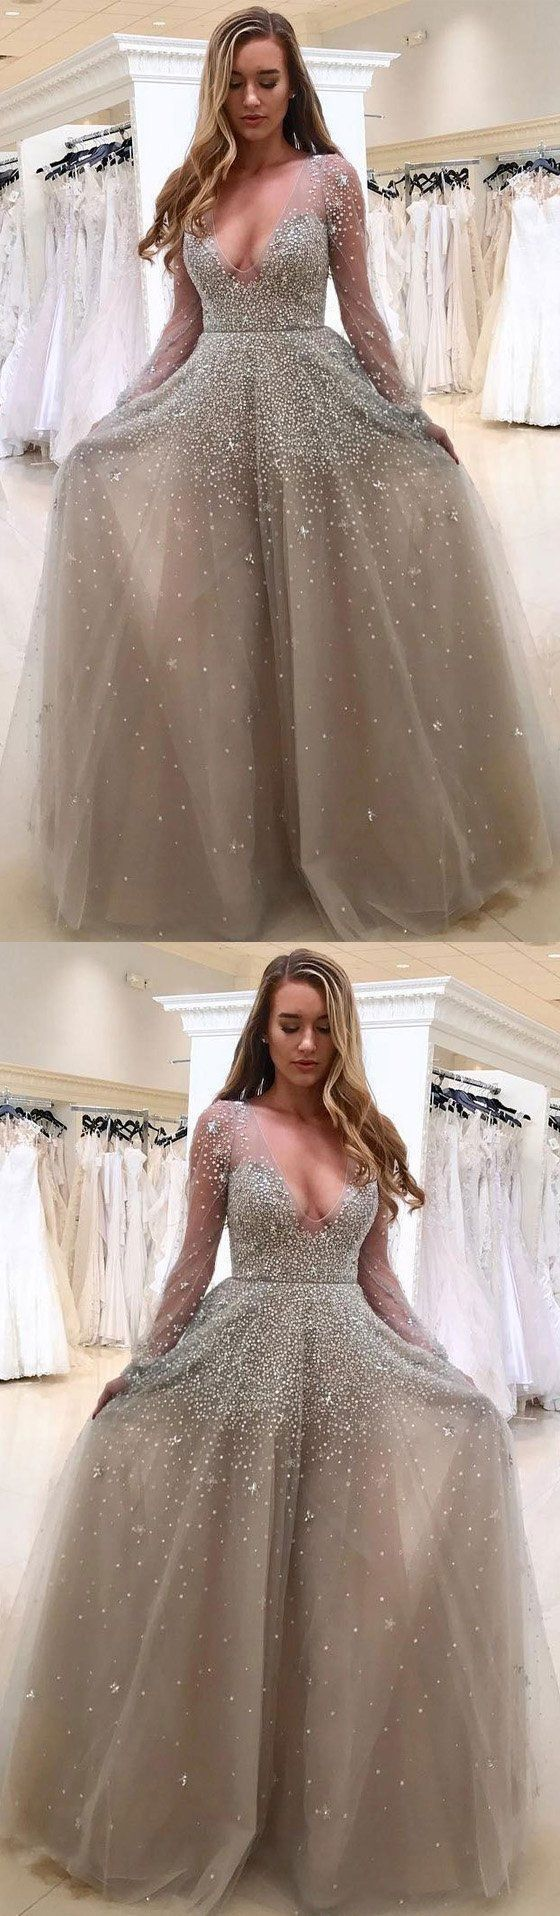 Long Sleeve Tulle A-Line Charming 2018 Prom Dresses,Prom Dresses,Formal Women